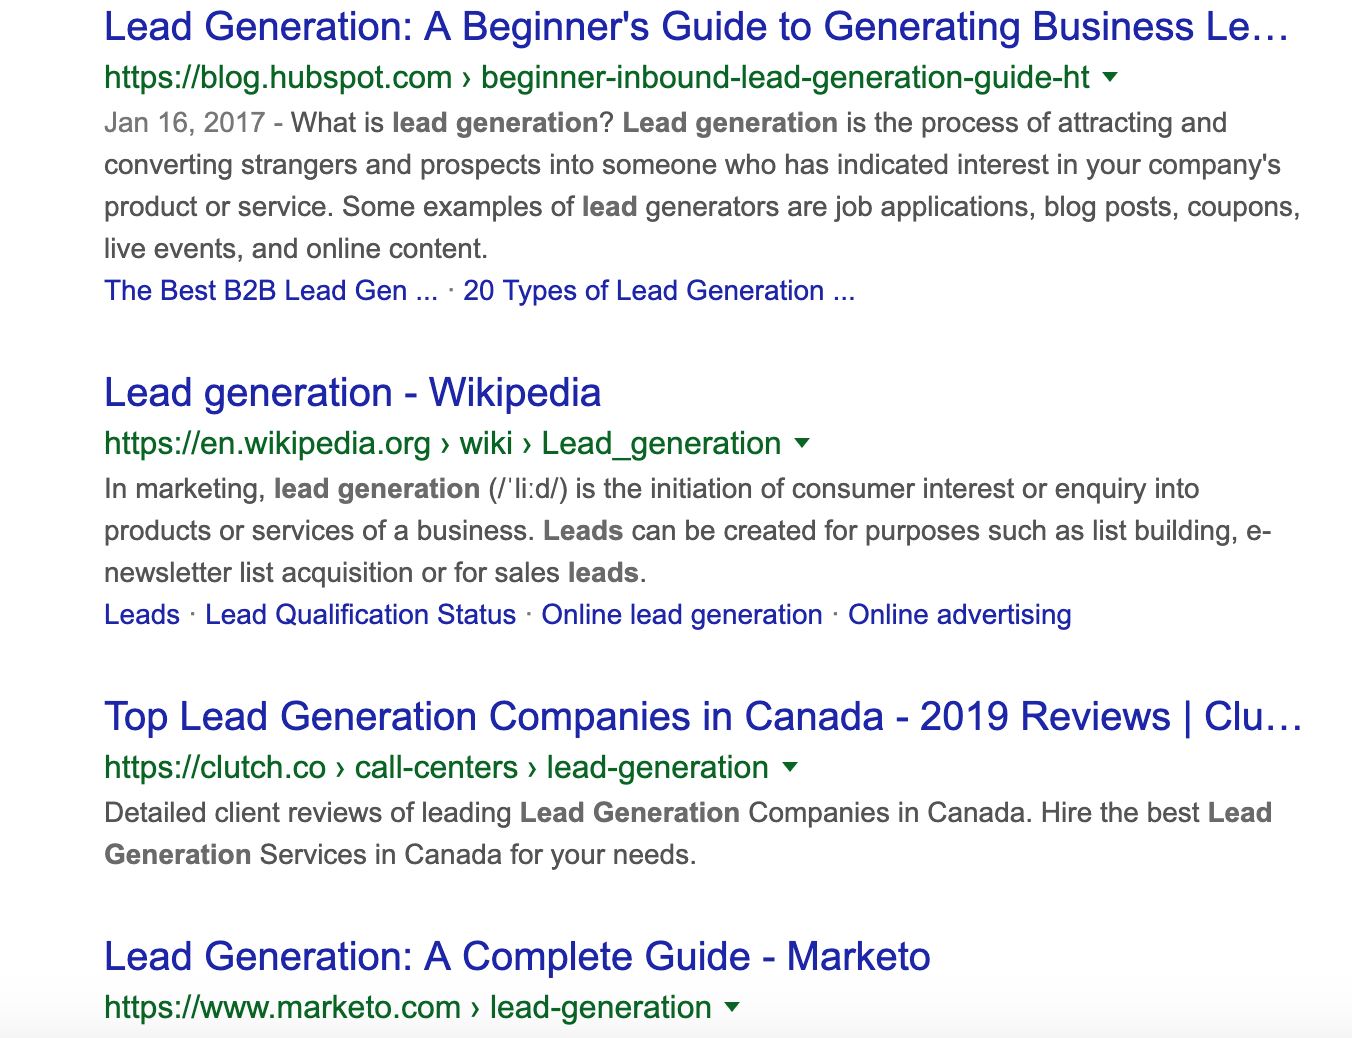 Lead Generation and Marketing Channels to Focus on - Organic search